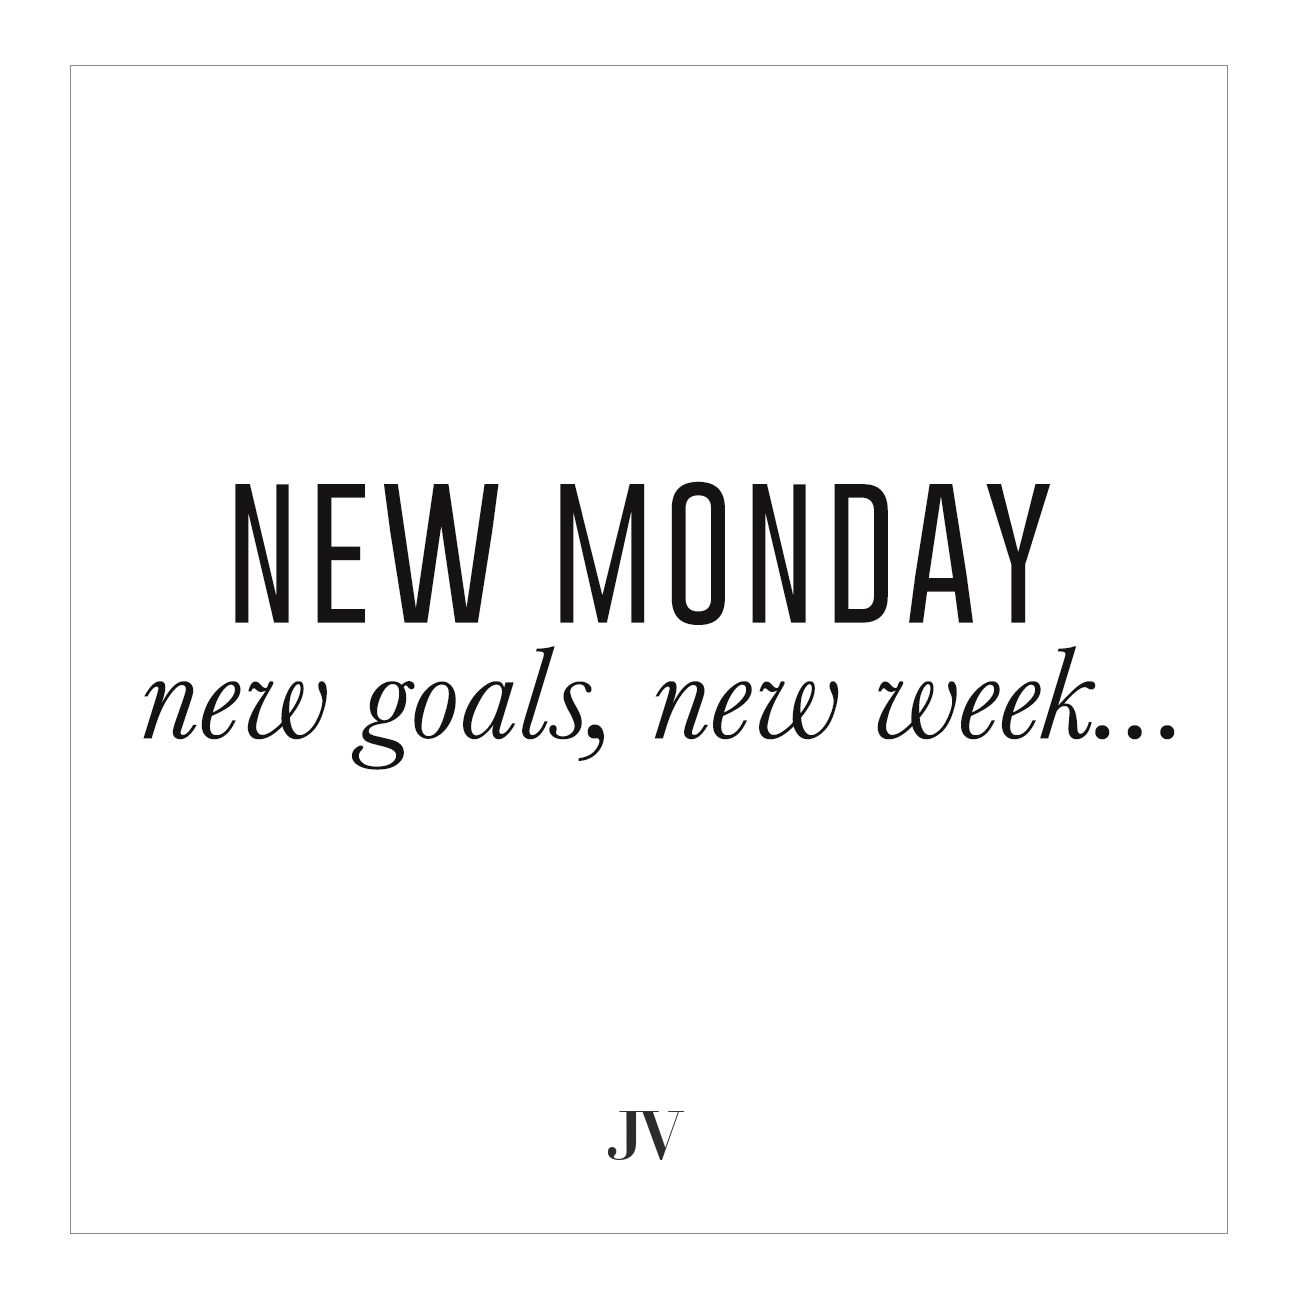 Week Quotes Interesting Josh V  New Monday New Goals New Week  Quote  Days Of The Week